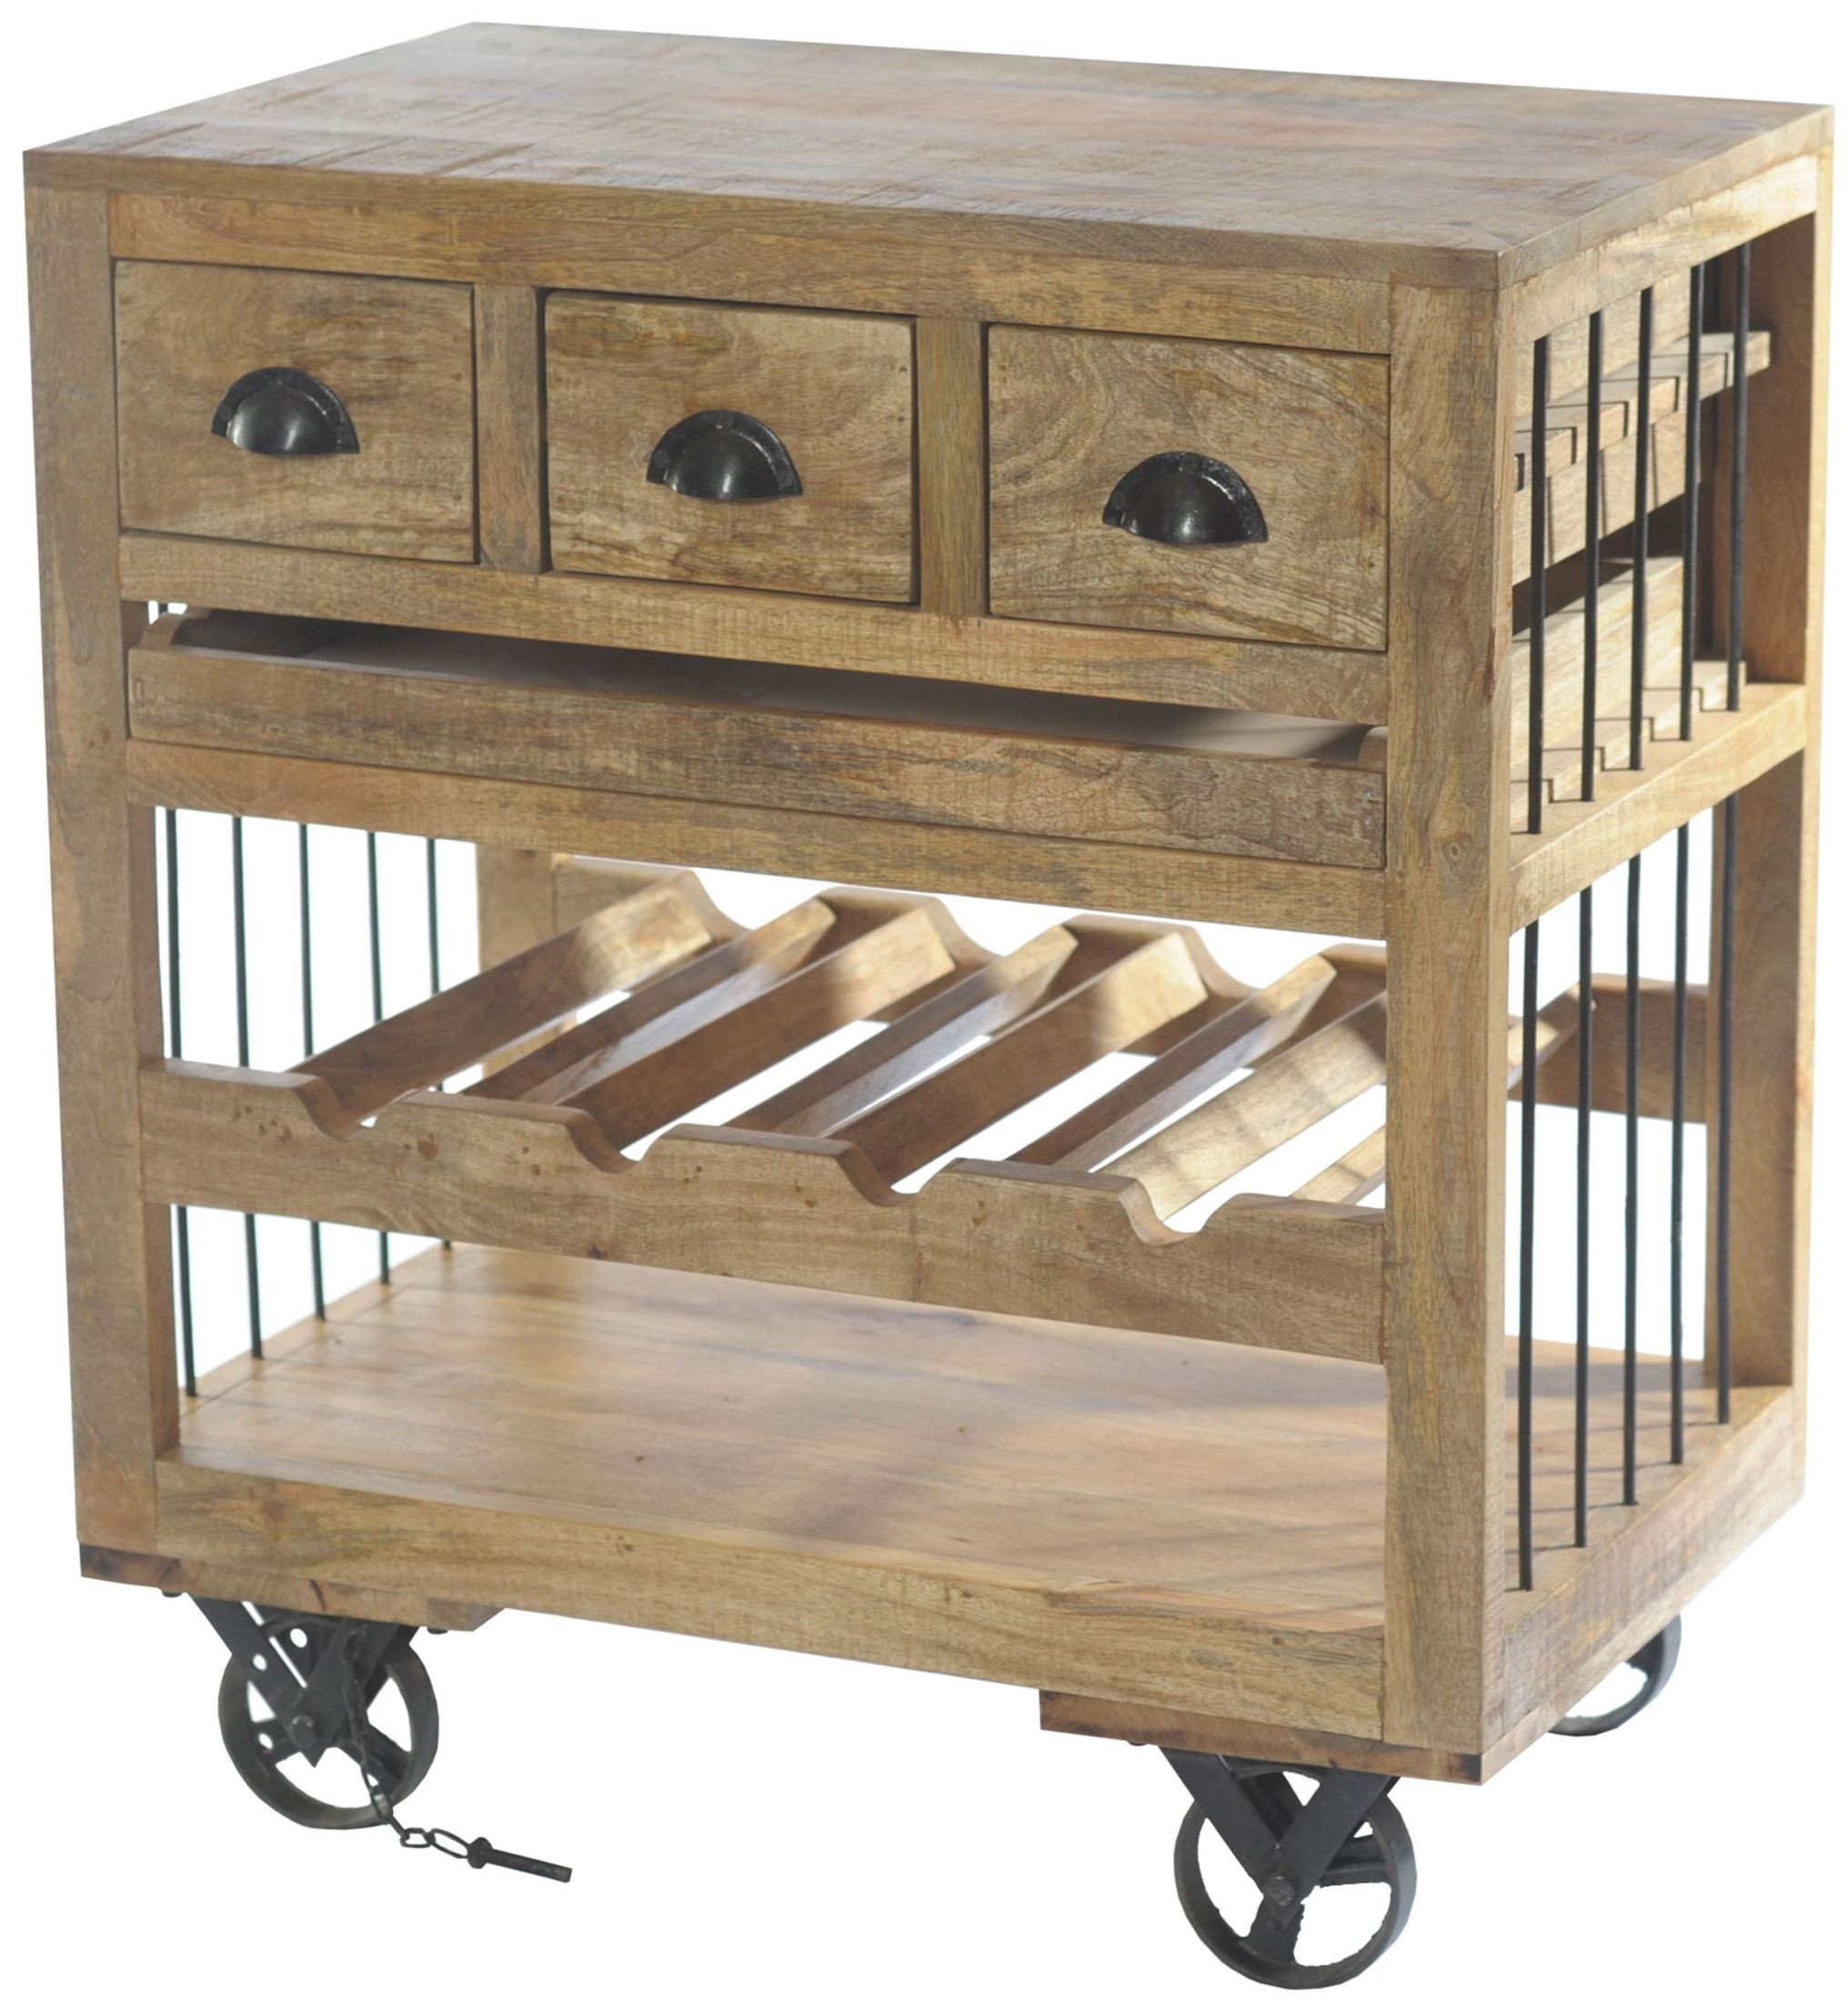 Very Impressive portraiture of Amara Wooden Wine Cart With Shelf On Wheels from Homelegance (6479  with #806A4B color and 2032x2200 pixels